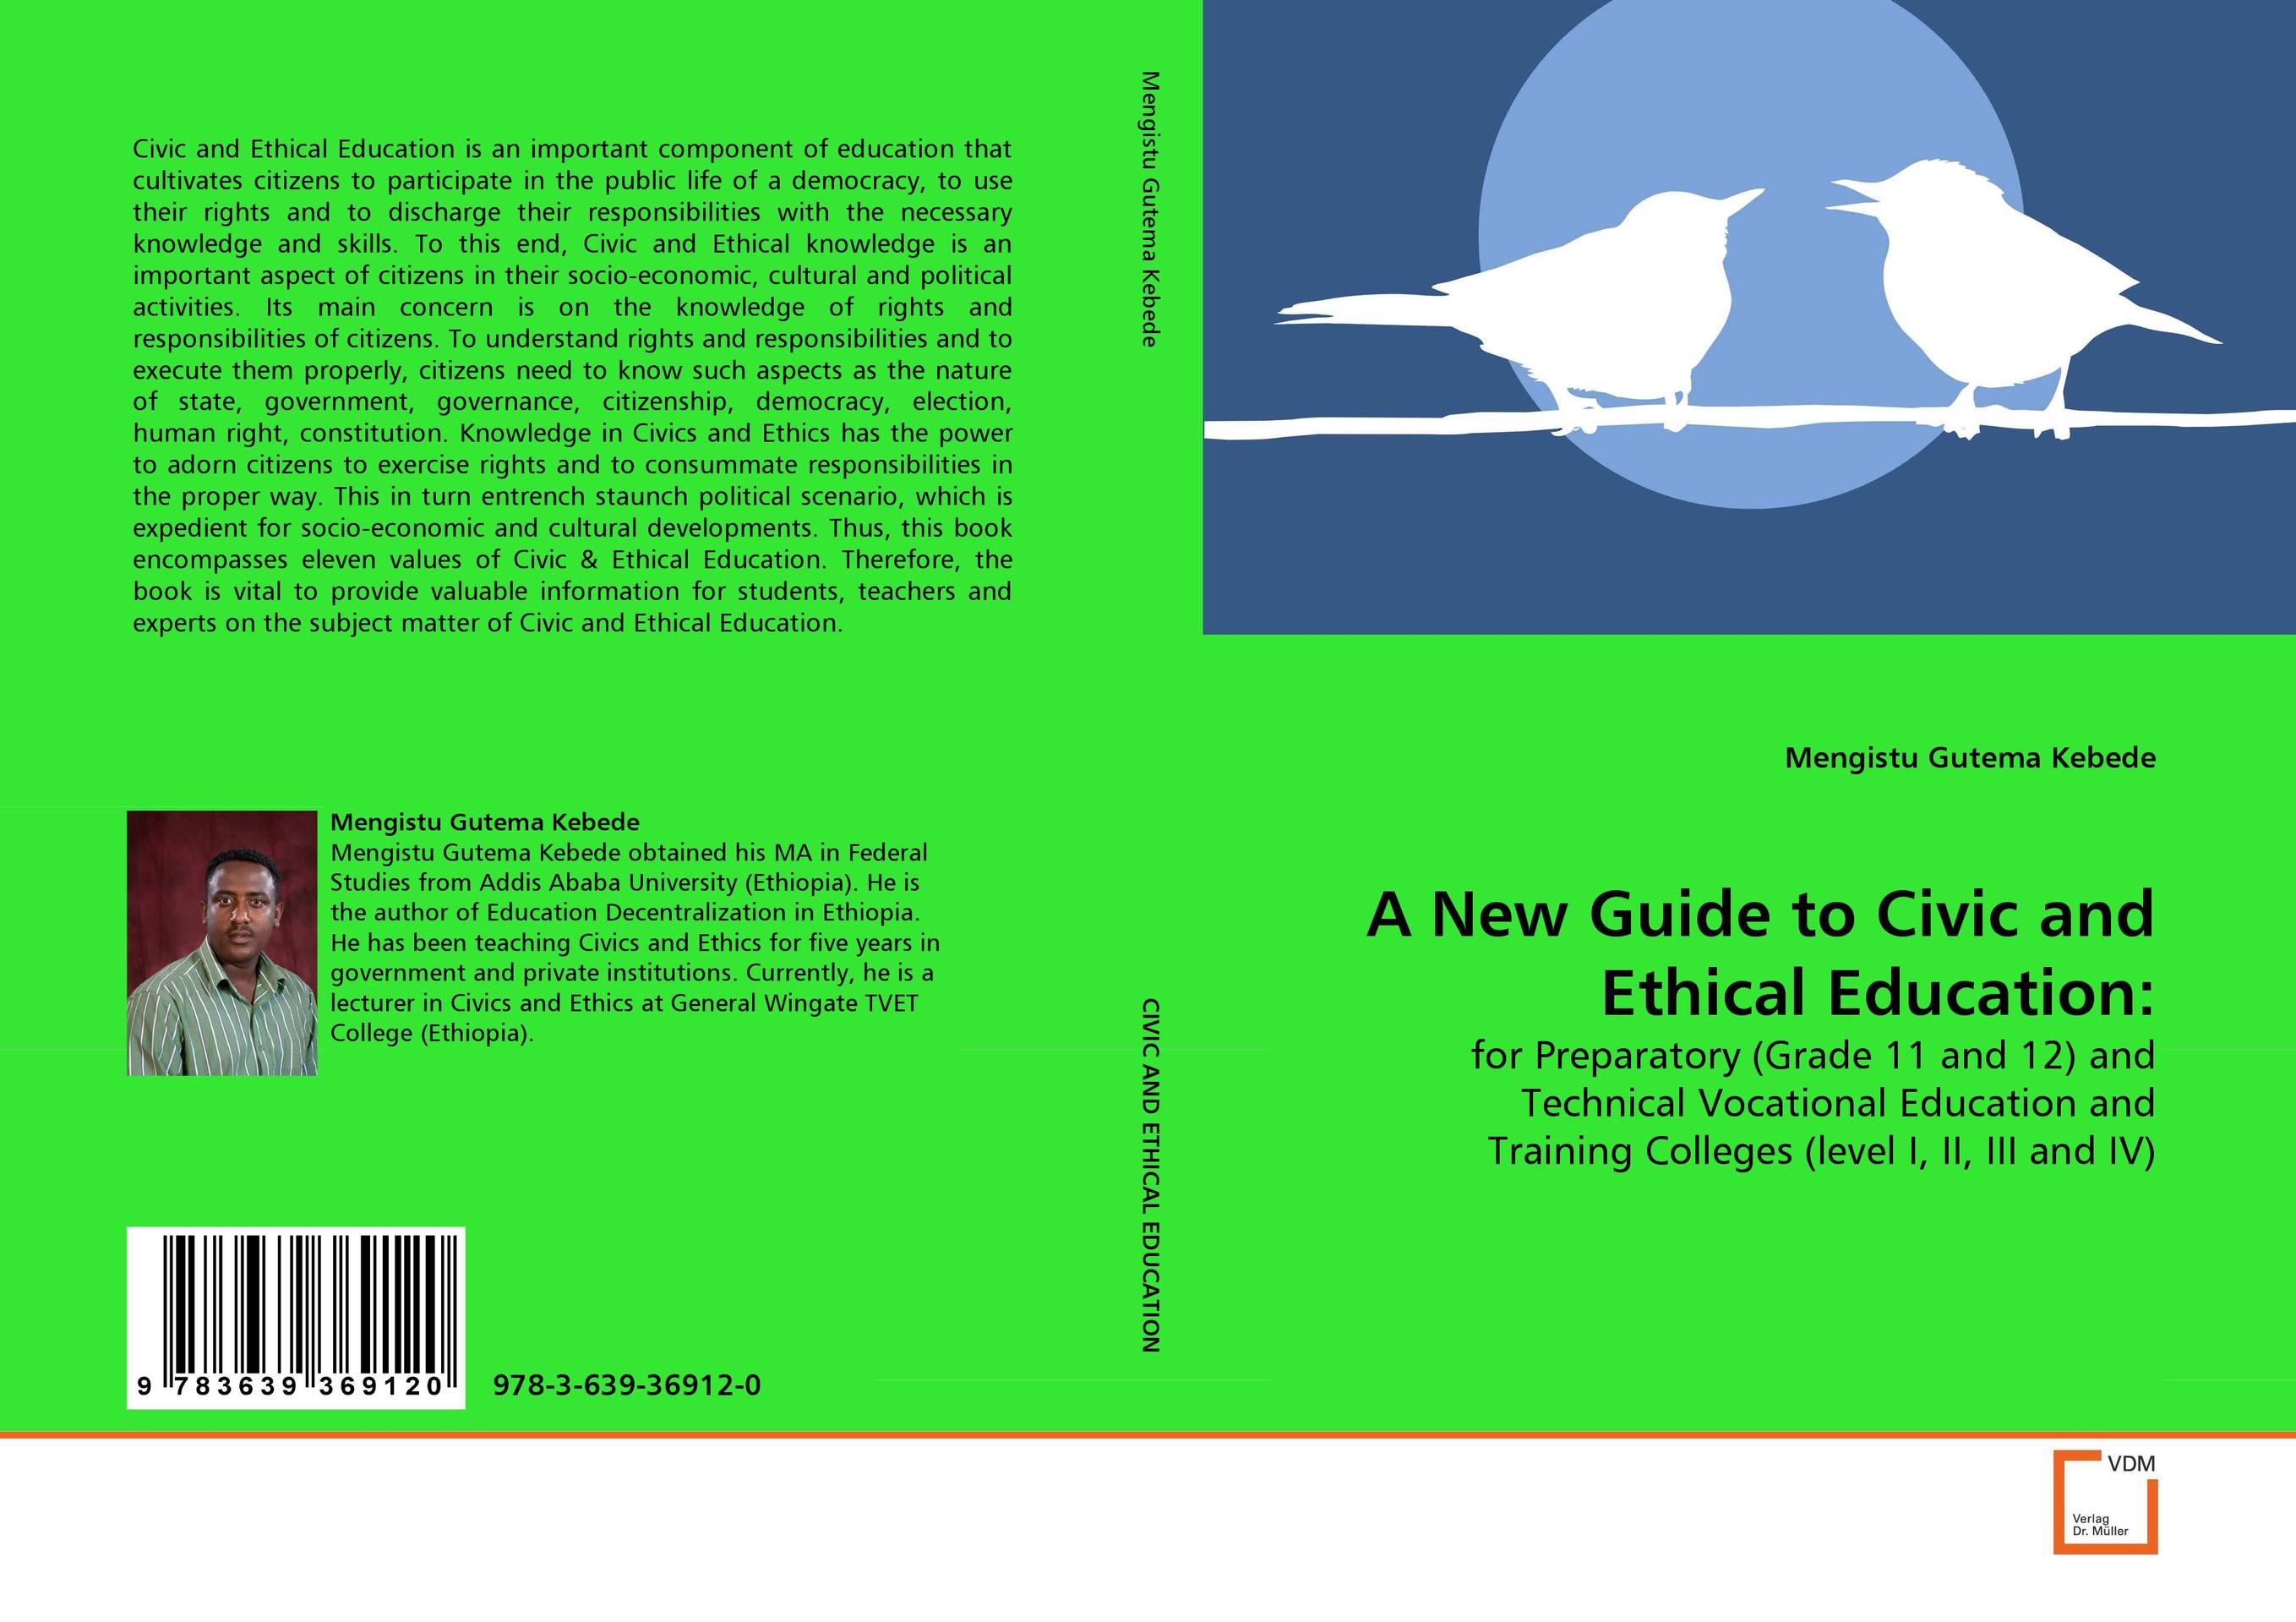 A New Guide to Civic and Ethical Education: dedicated to honda civic glass lifter assembly eight generations of civic 06 11 models after the left behind the main driving